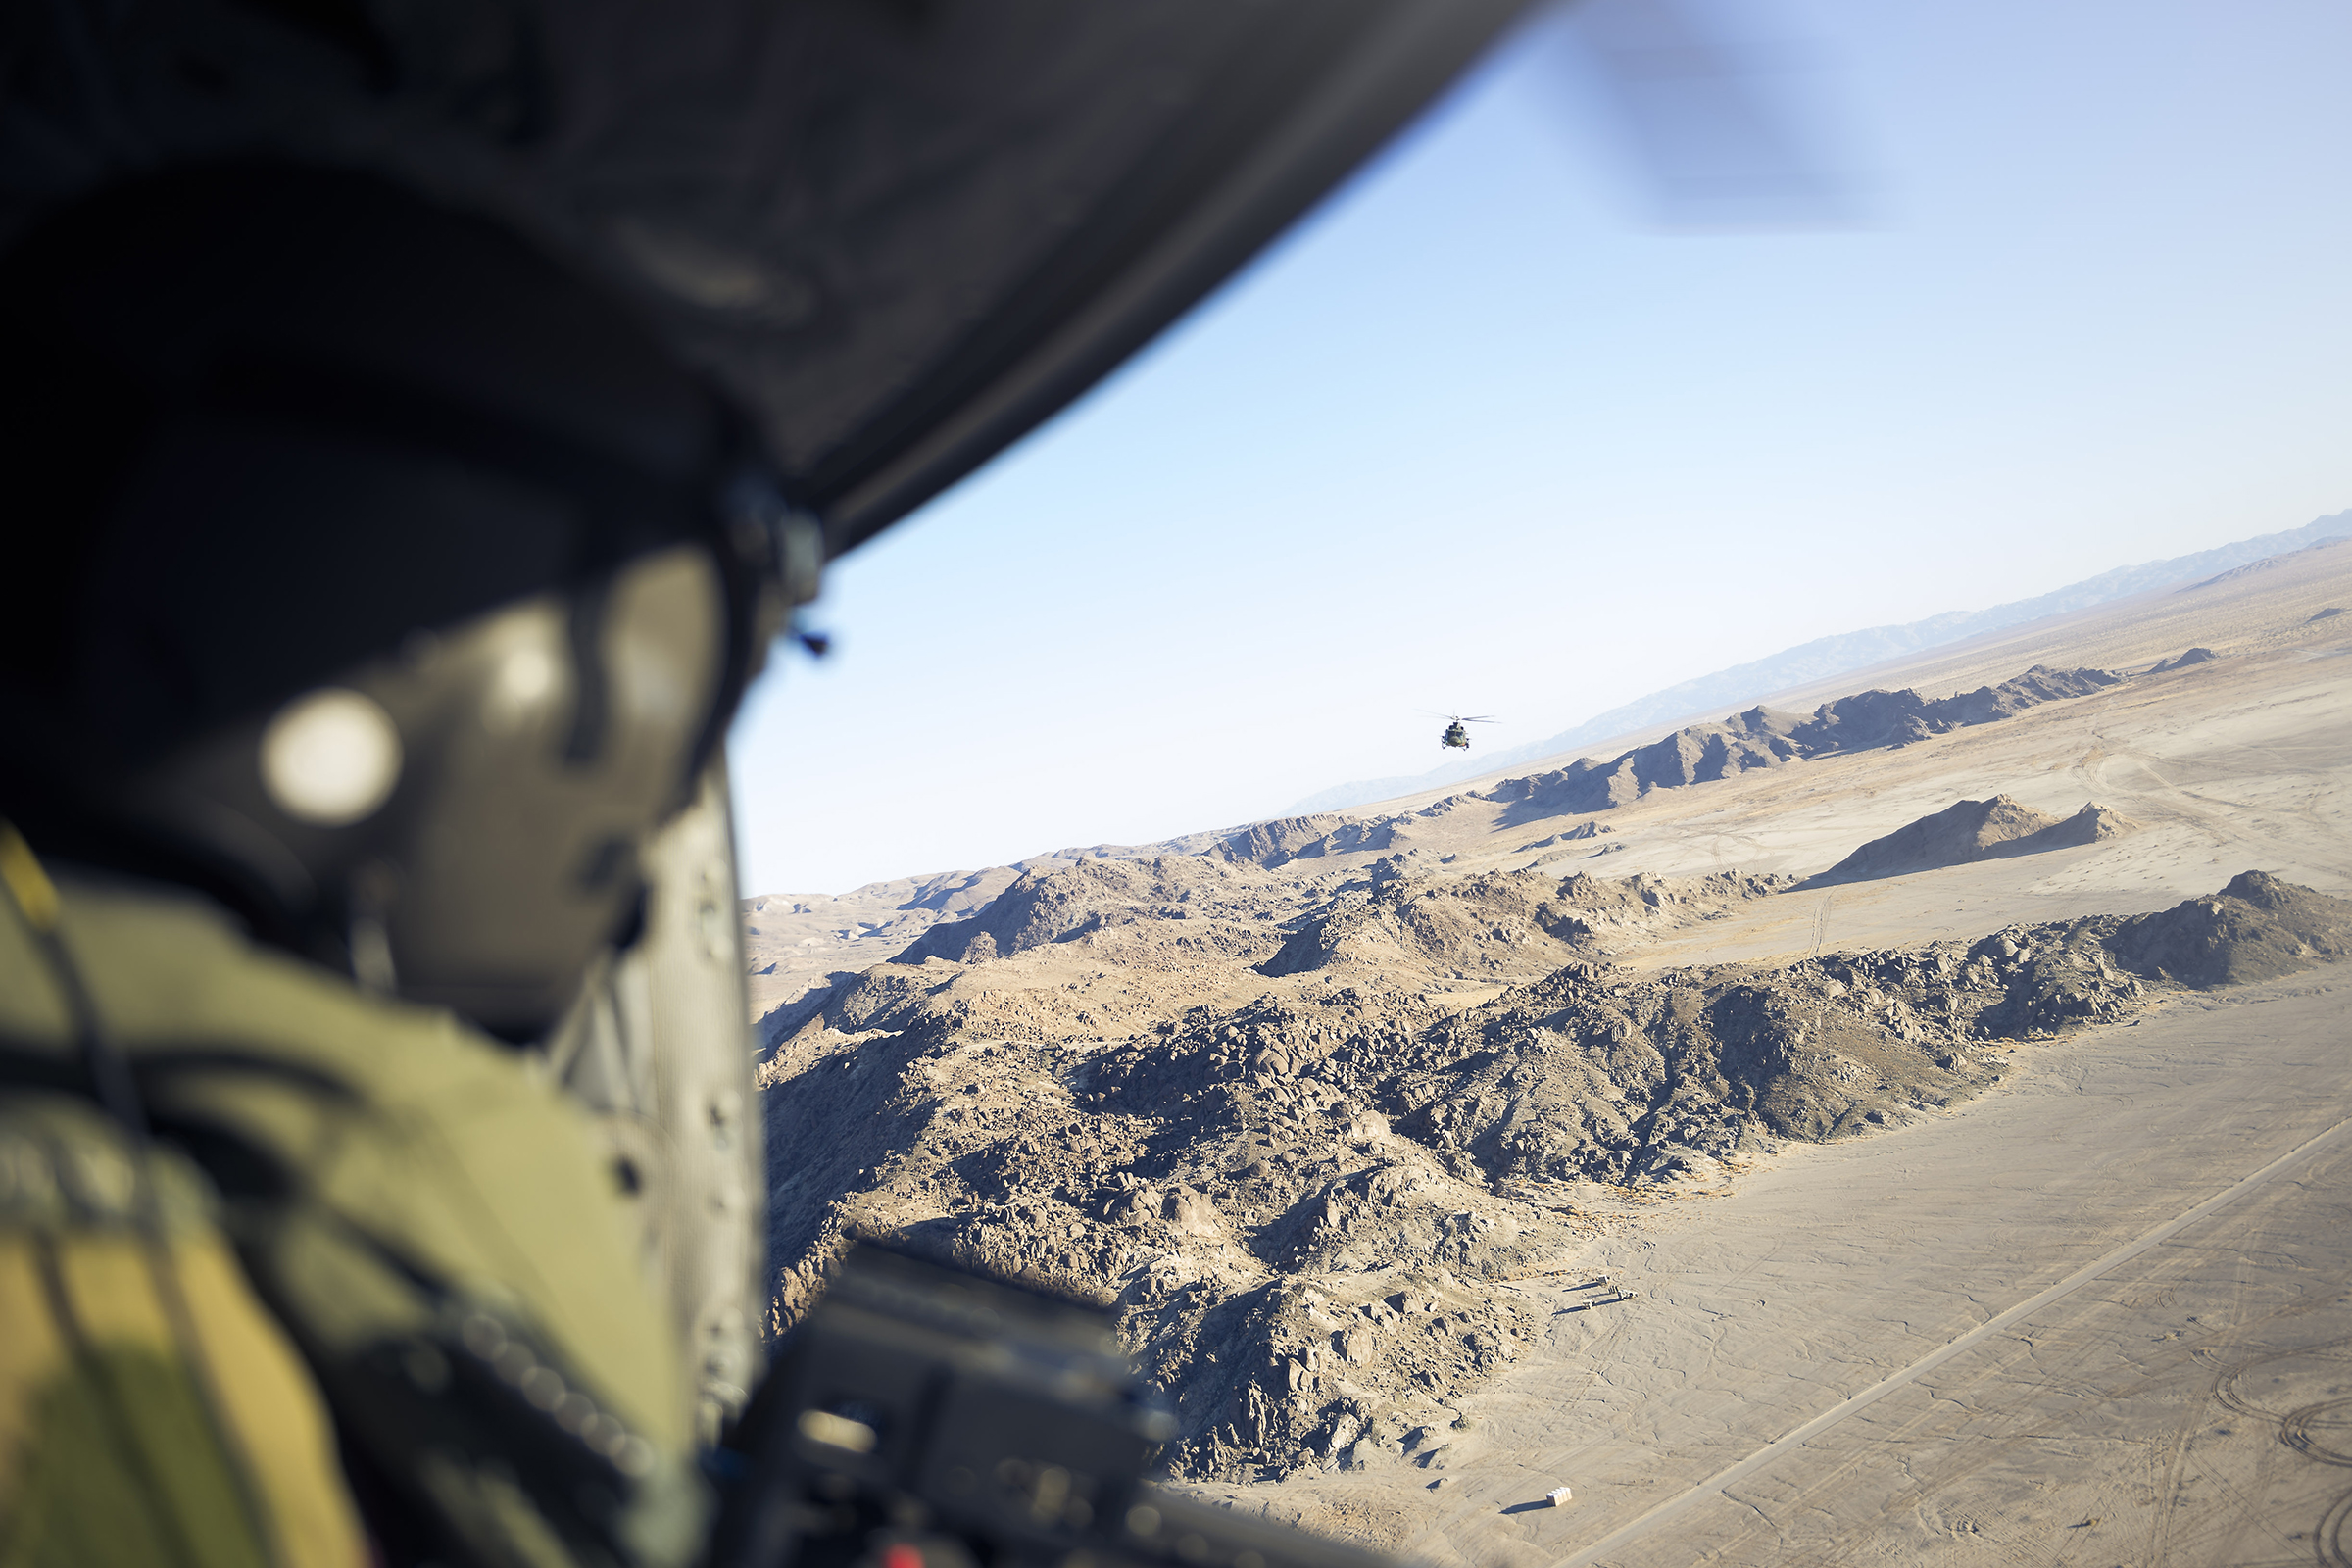 Members of 408 Tactical Helicopter Squadron conduct tactical flying training with CH-146 Griffon helicopters on November 11, 2019, during Exercise Striking Bat at Marine Corps Air Ground Combat Centrer Twentynine Palms, California. The squadron is practicing flying operations and helicopter maintenance in an austere and challenging desert environment, similar to what they will face during their upcoming deployment to Iraq. PHOTO: Corporal Desiree T. Bourdon, FA01-2019-0040-026